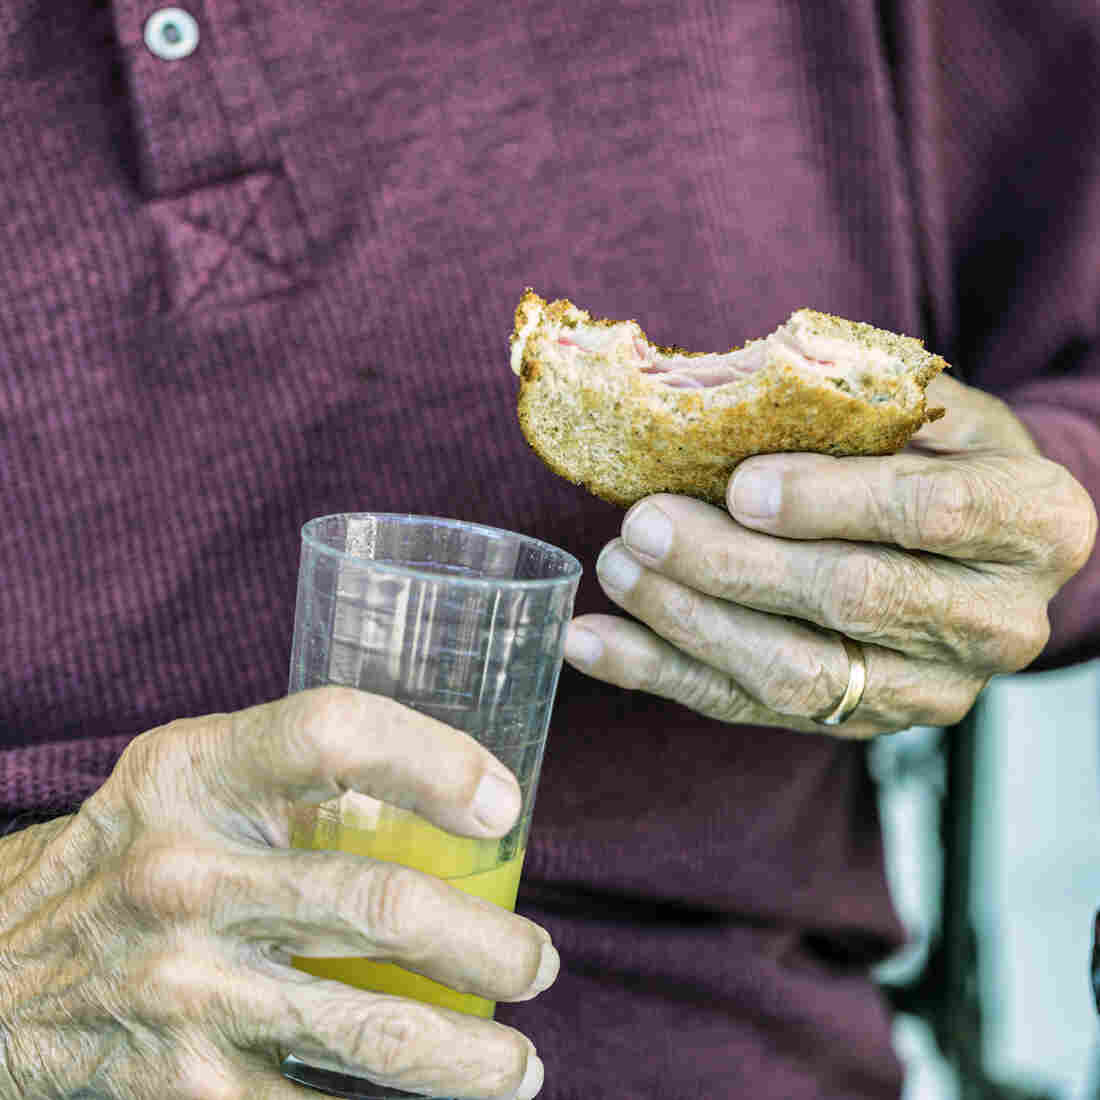 Malnourished seniors may be forgotten until they show up in the emergency room, often for another reason like an injury.